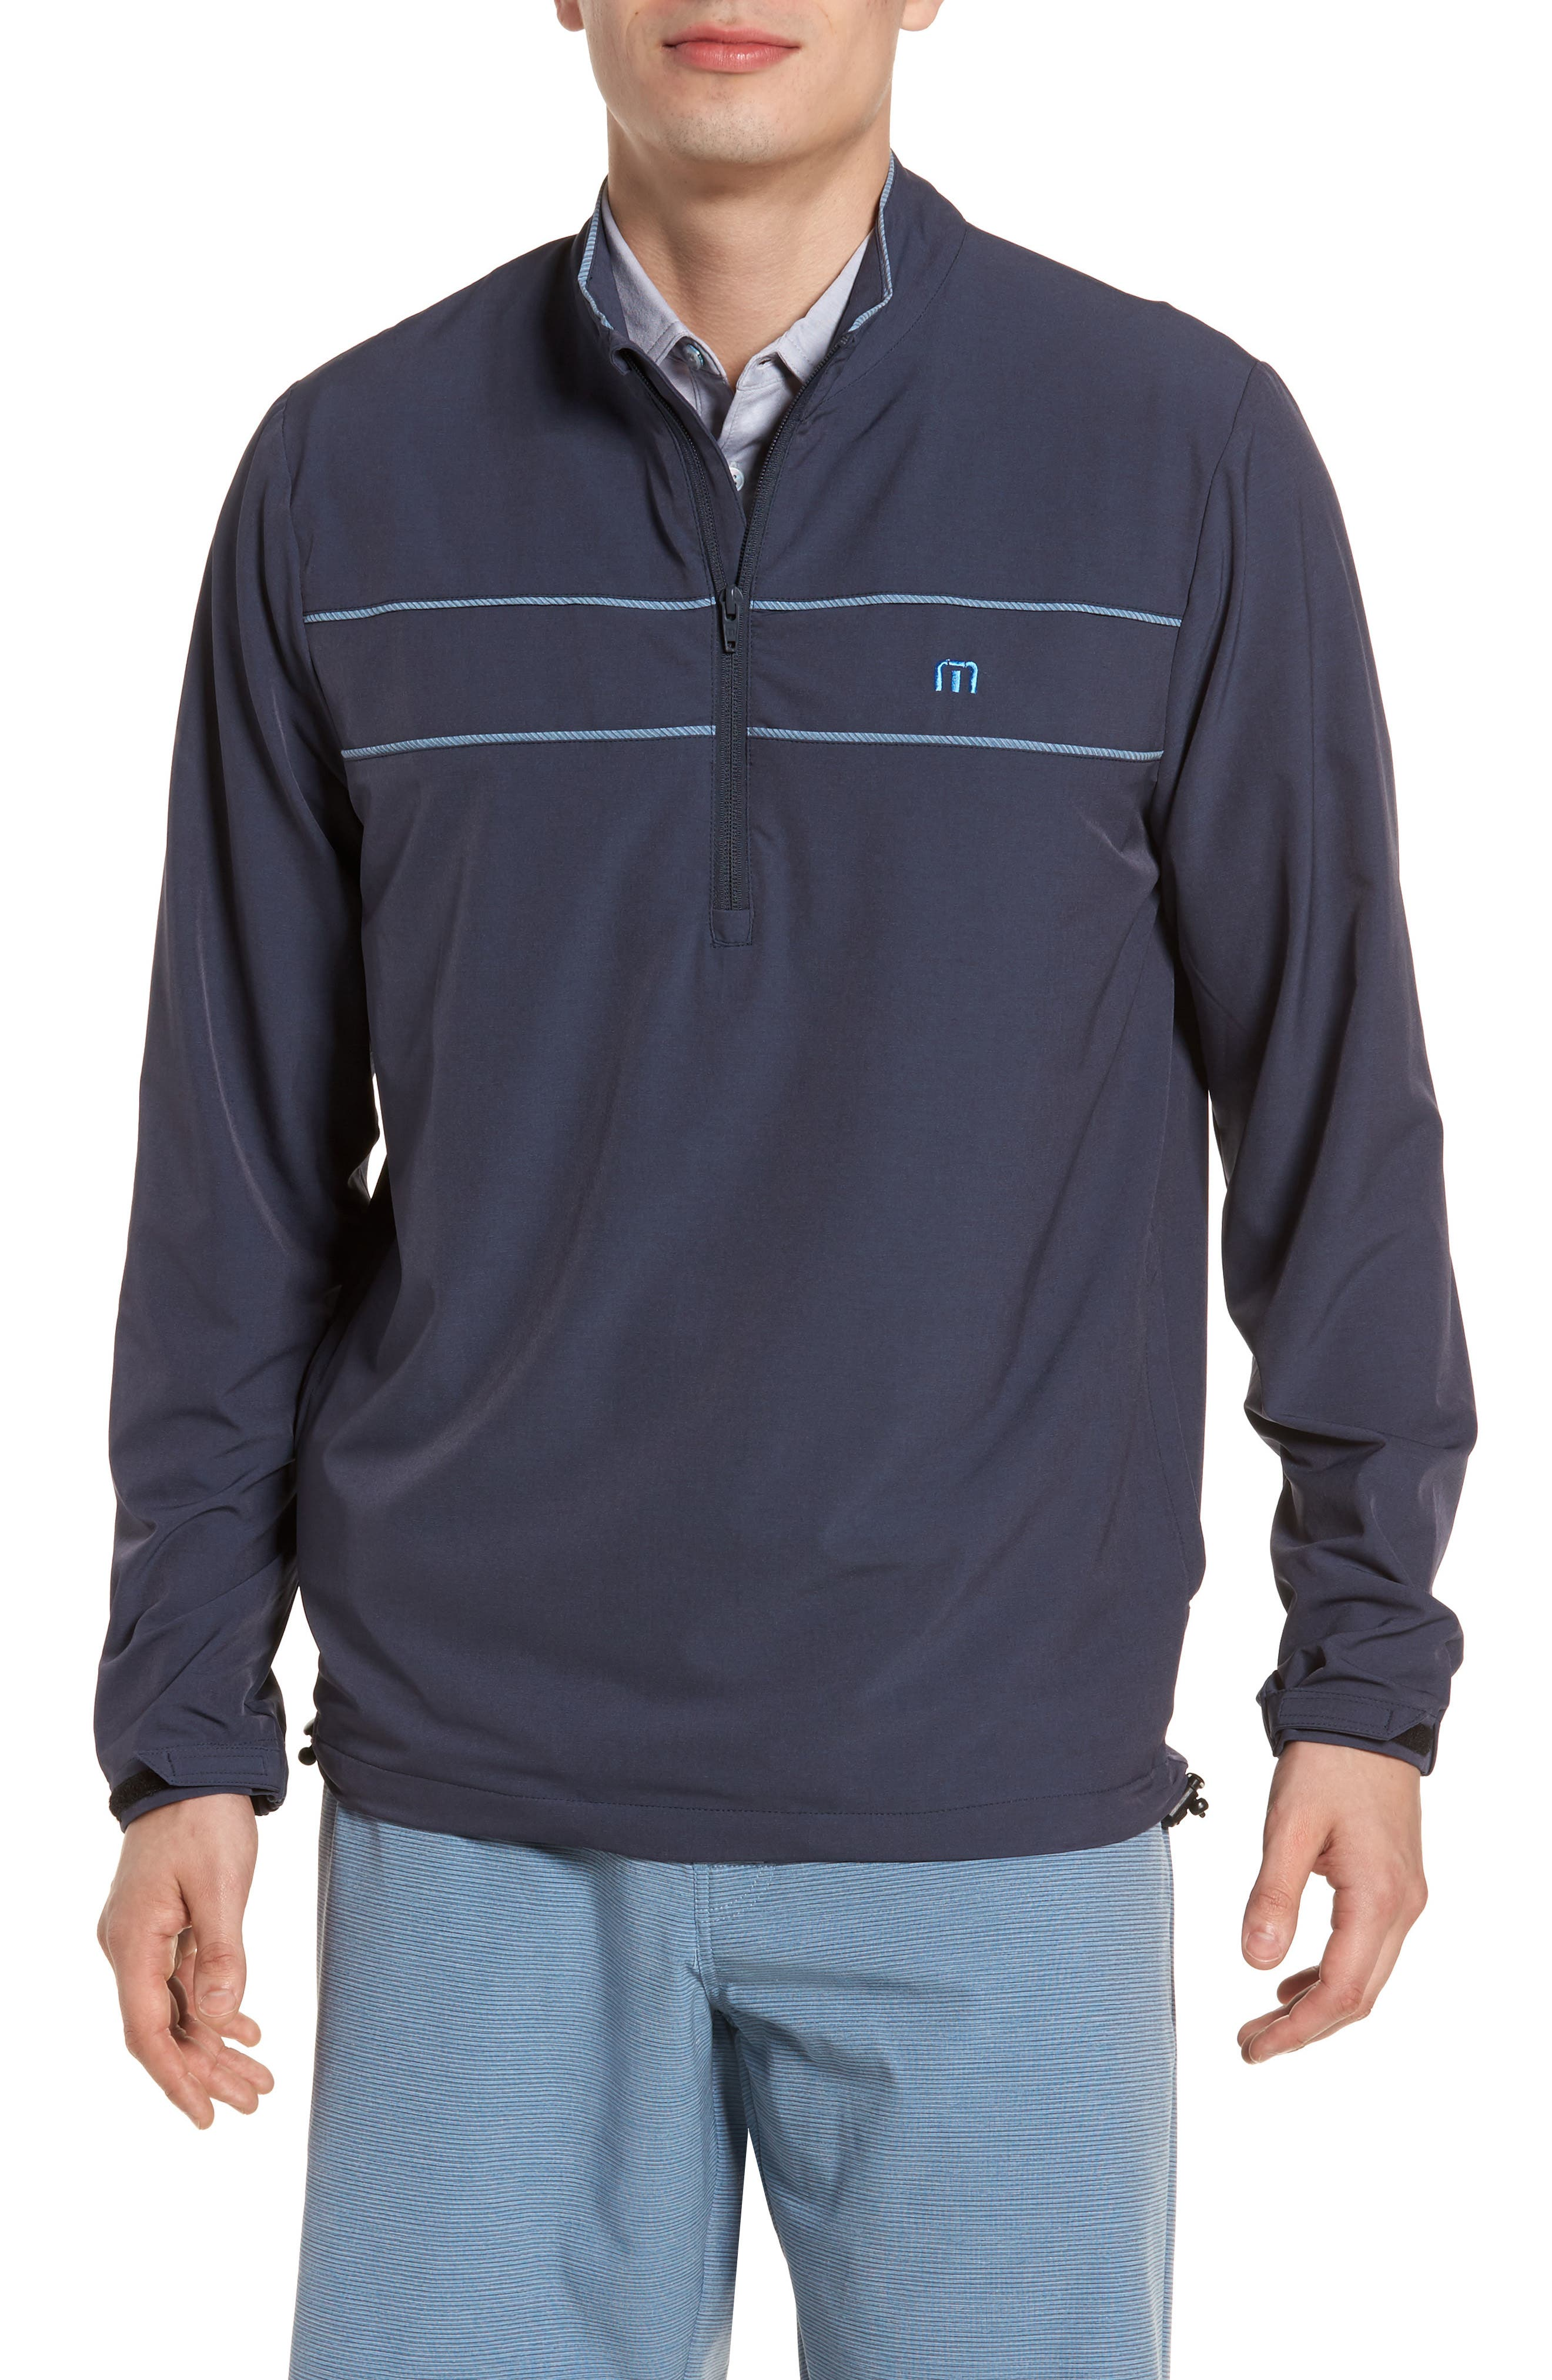 Leon Half Zip Pullover,                         Main,                         color, Blue Nights/ French Blue